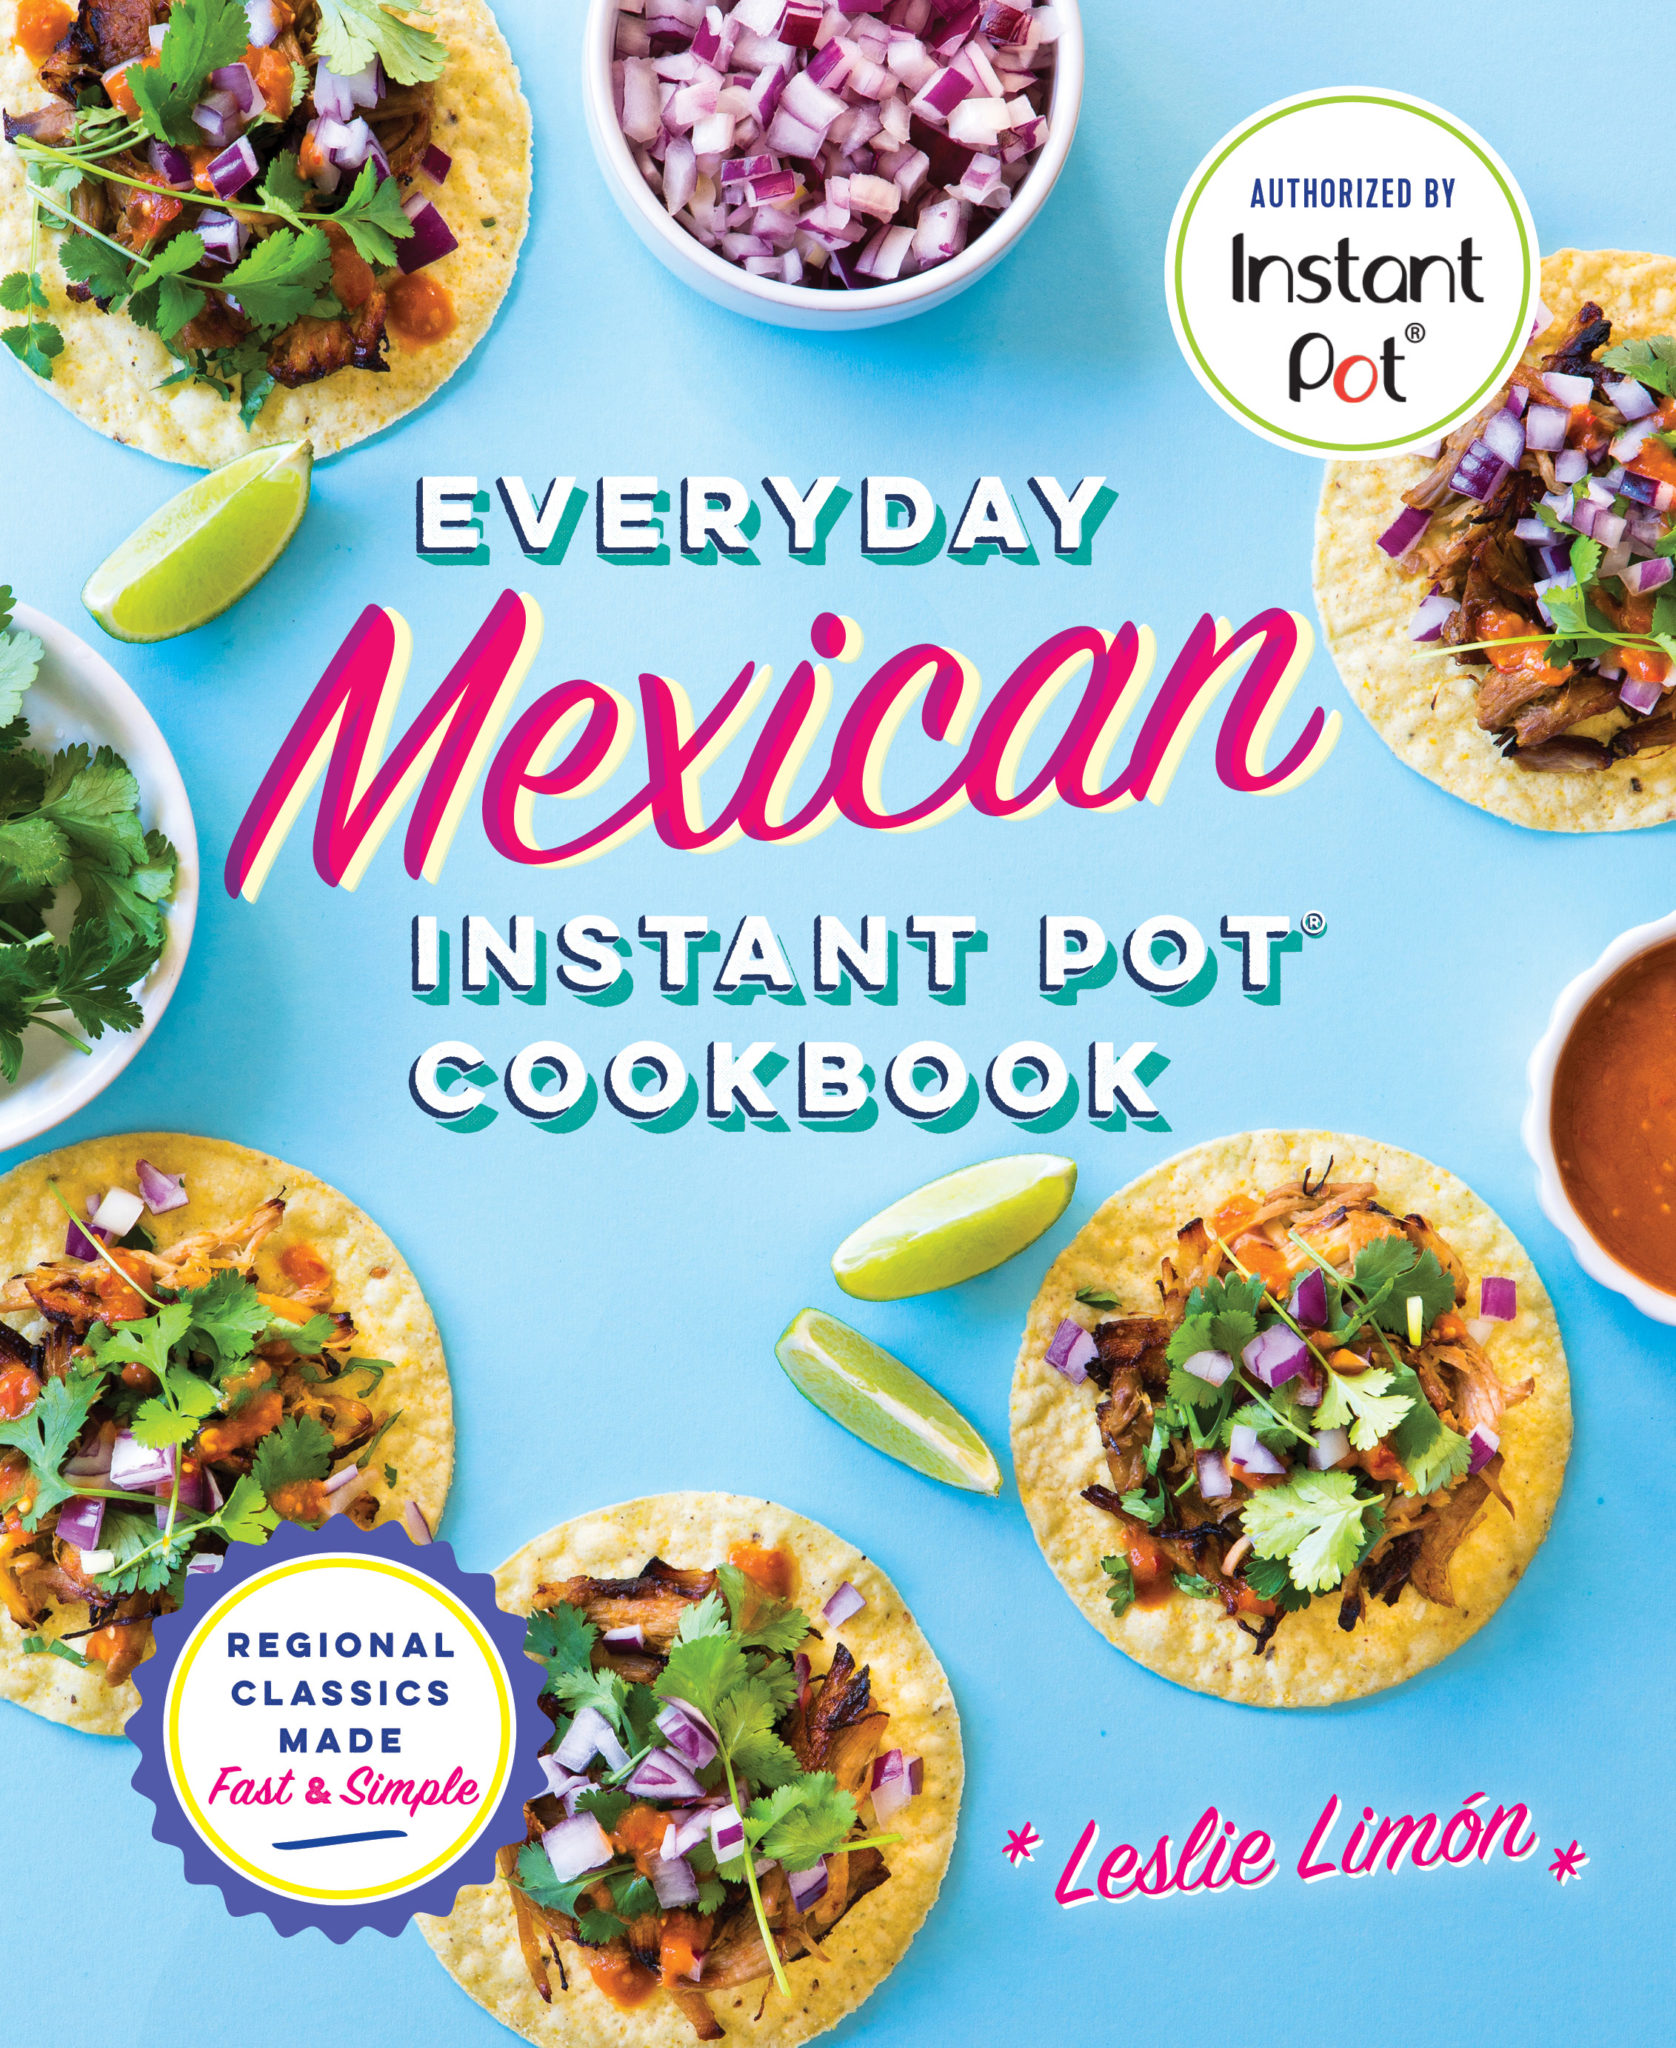 Everyday Mexican Instant Pot Cookbook by Leslie Limon